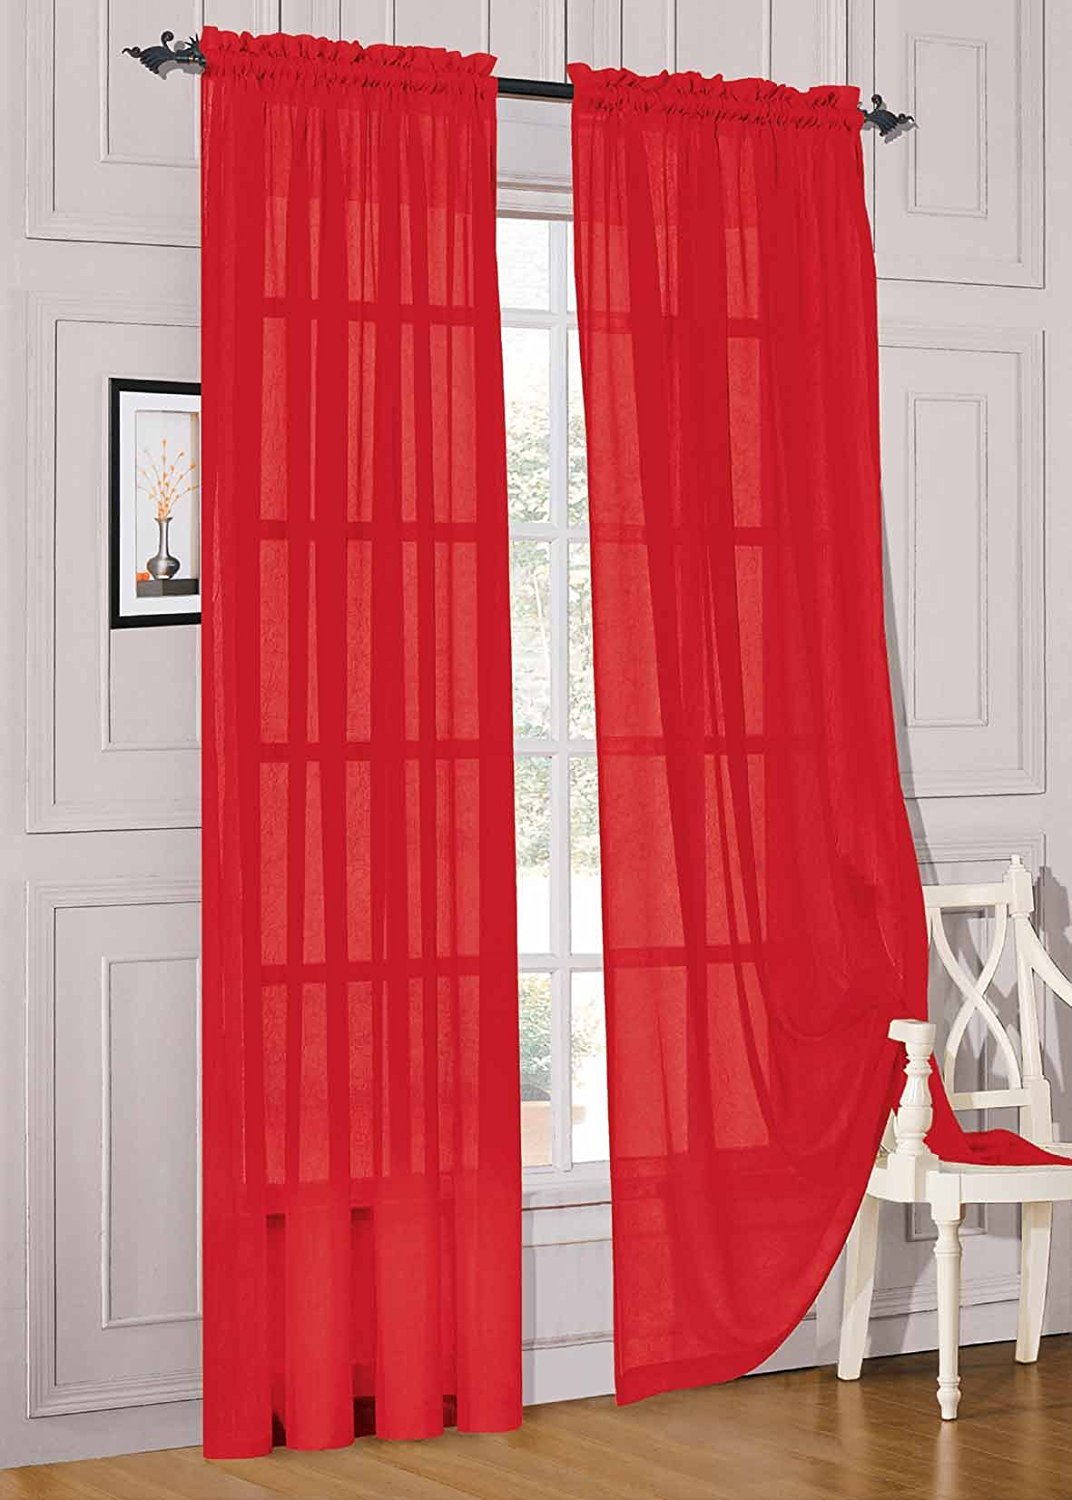 WPM 2 Piece Beautiful Sheer Window Elegance Curtains/drape/panels/treatment Red